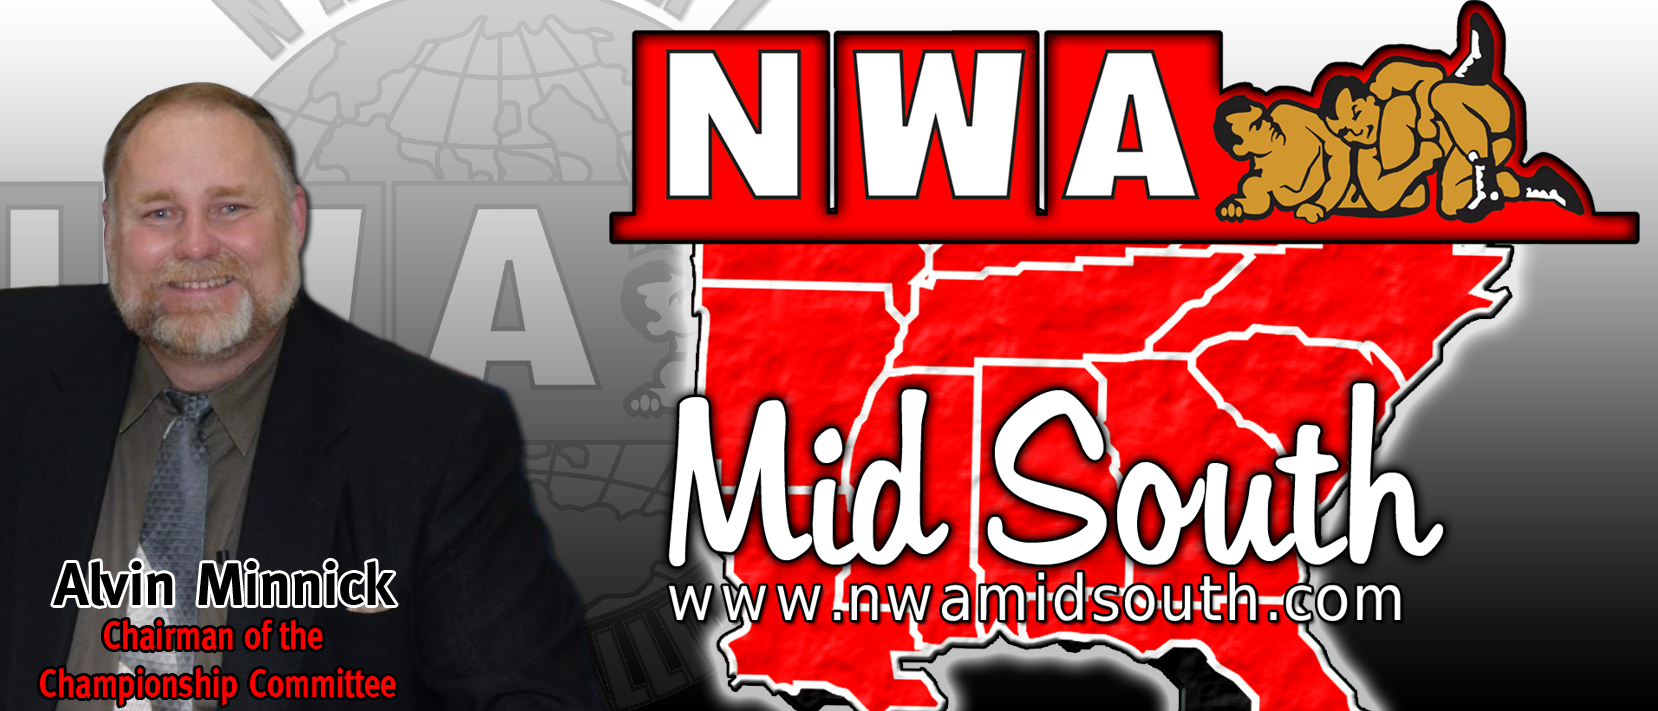 Announcement: NWA MID SOUTH Selects a Chairman of the Championship Committee